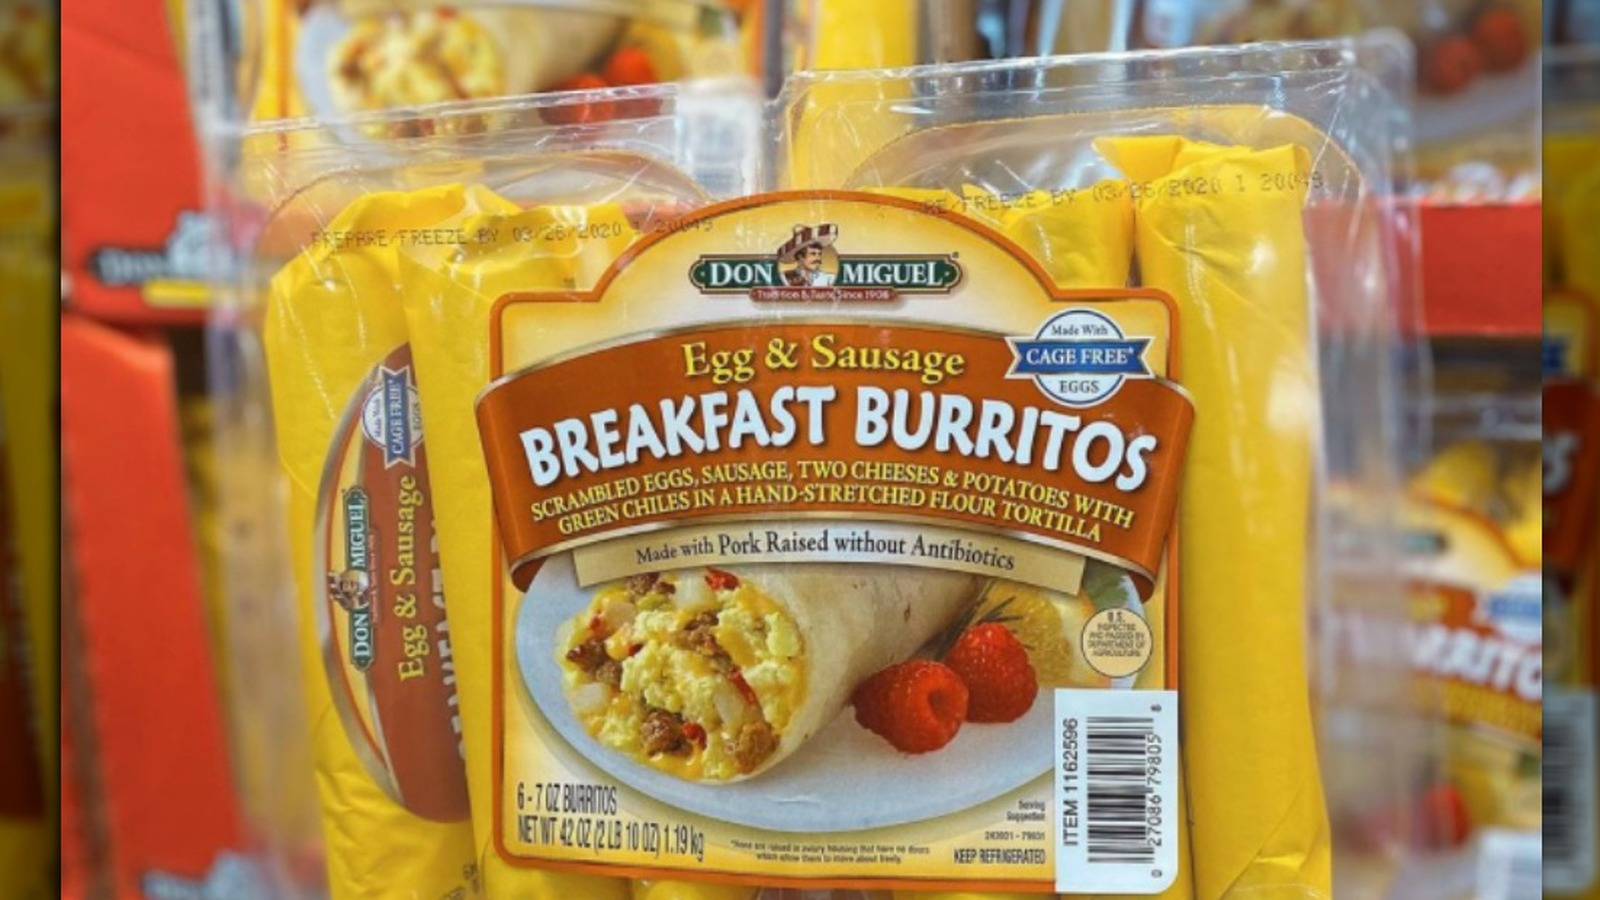 These Egg And Sausage Breakfast Burritos Have Costco Shoppers Divided